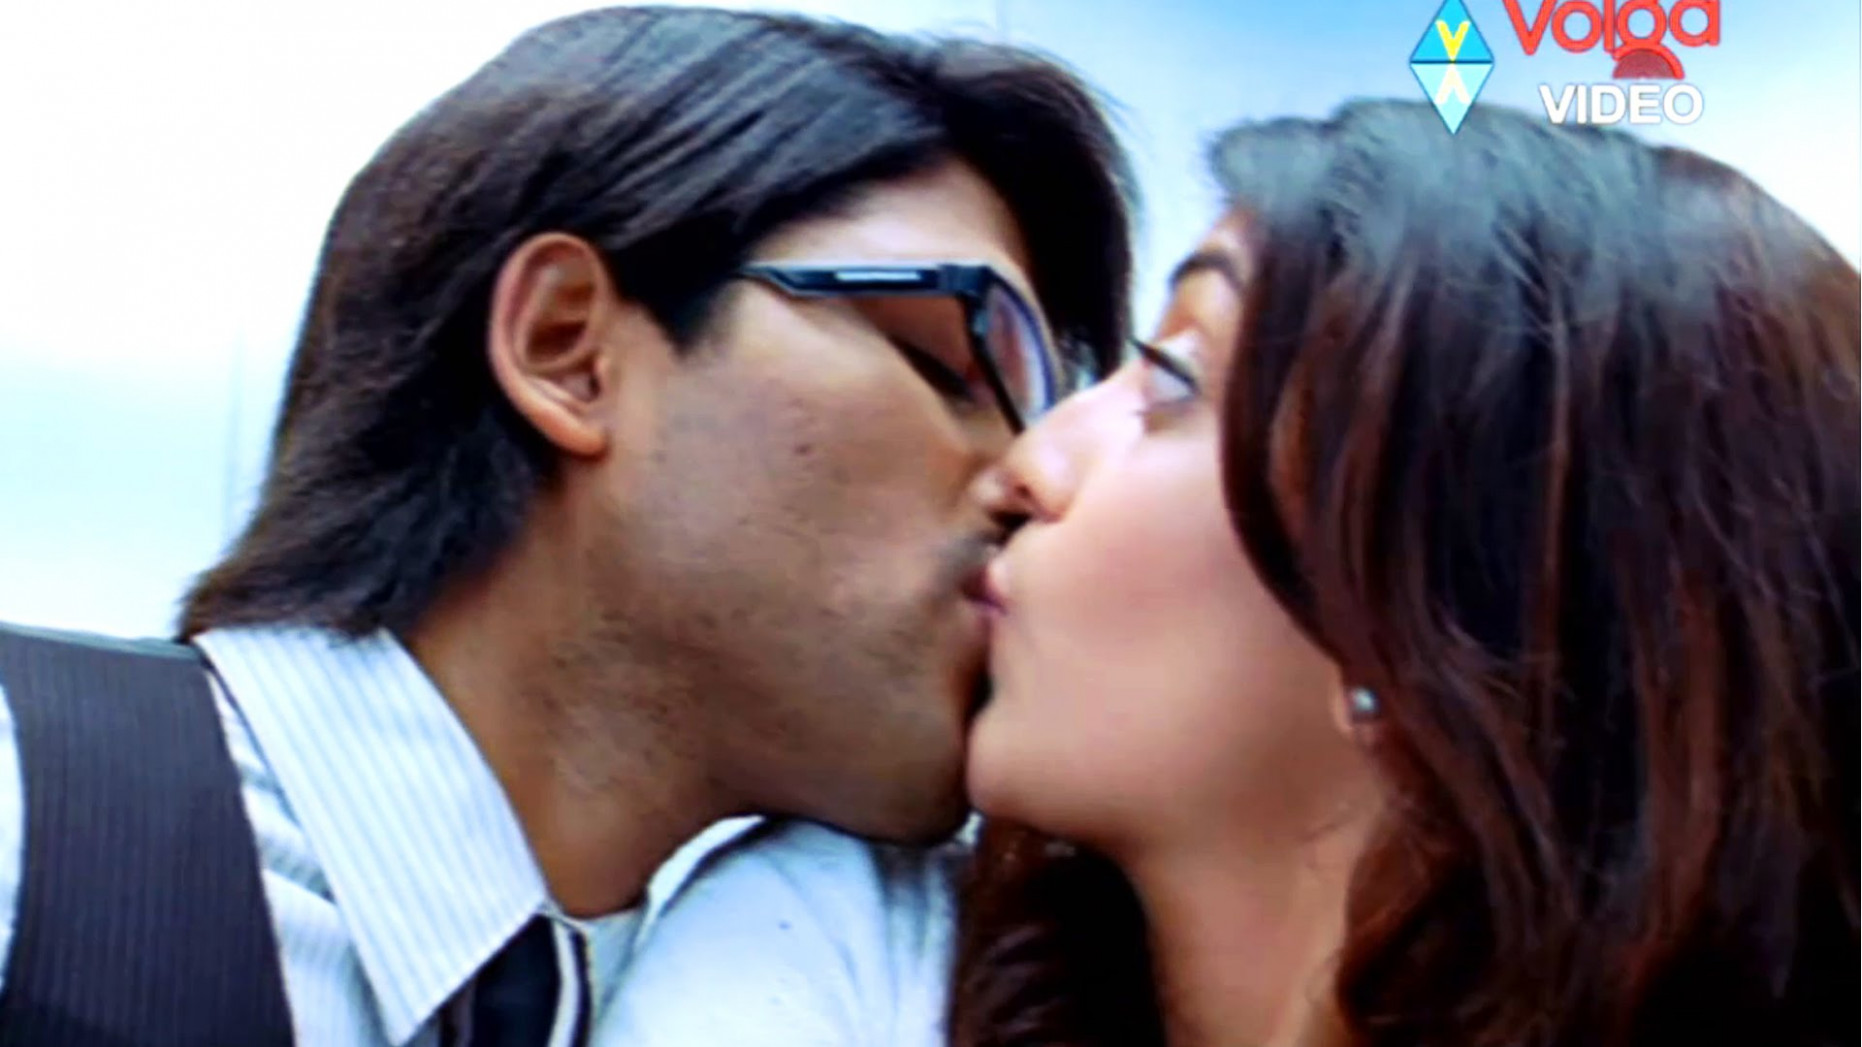 Anushka Shetty kiss | Anushka Shetty Hot Images - youngest tollywood actress